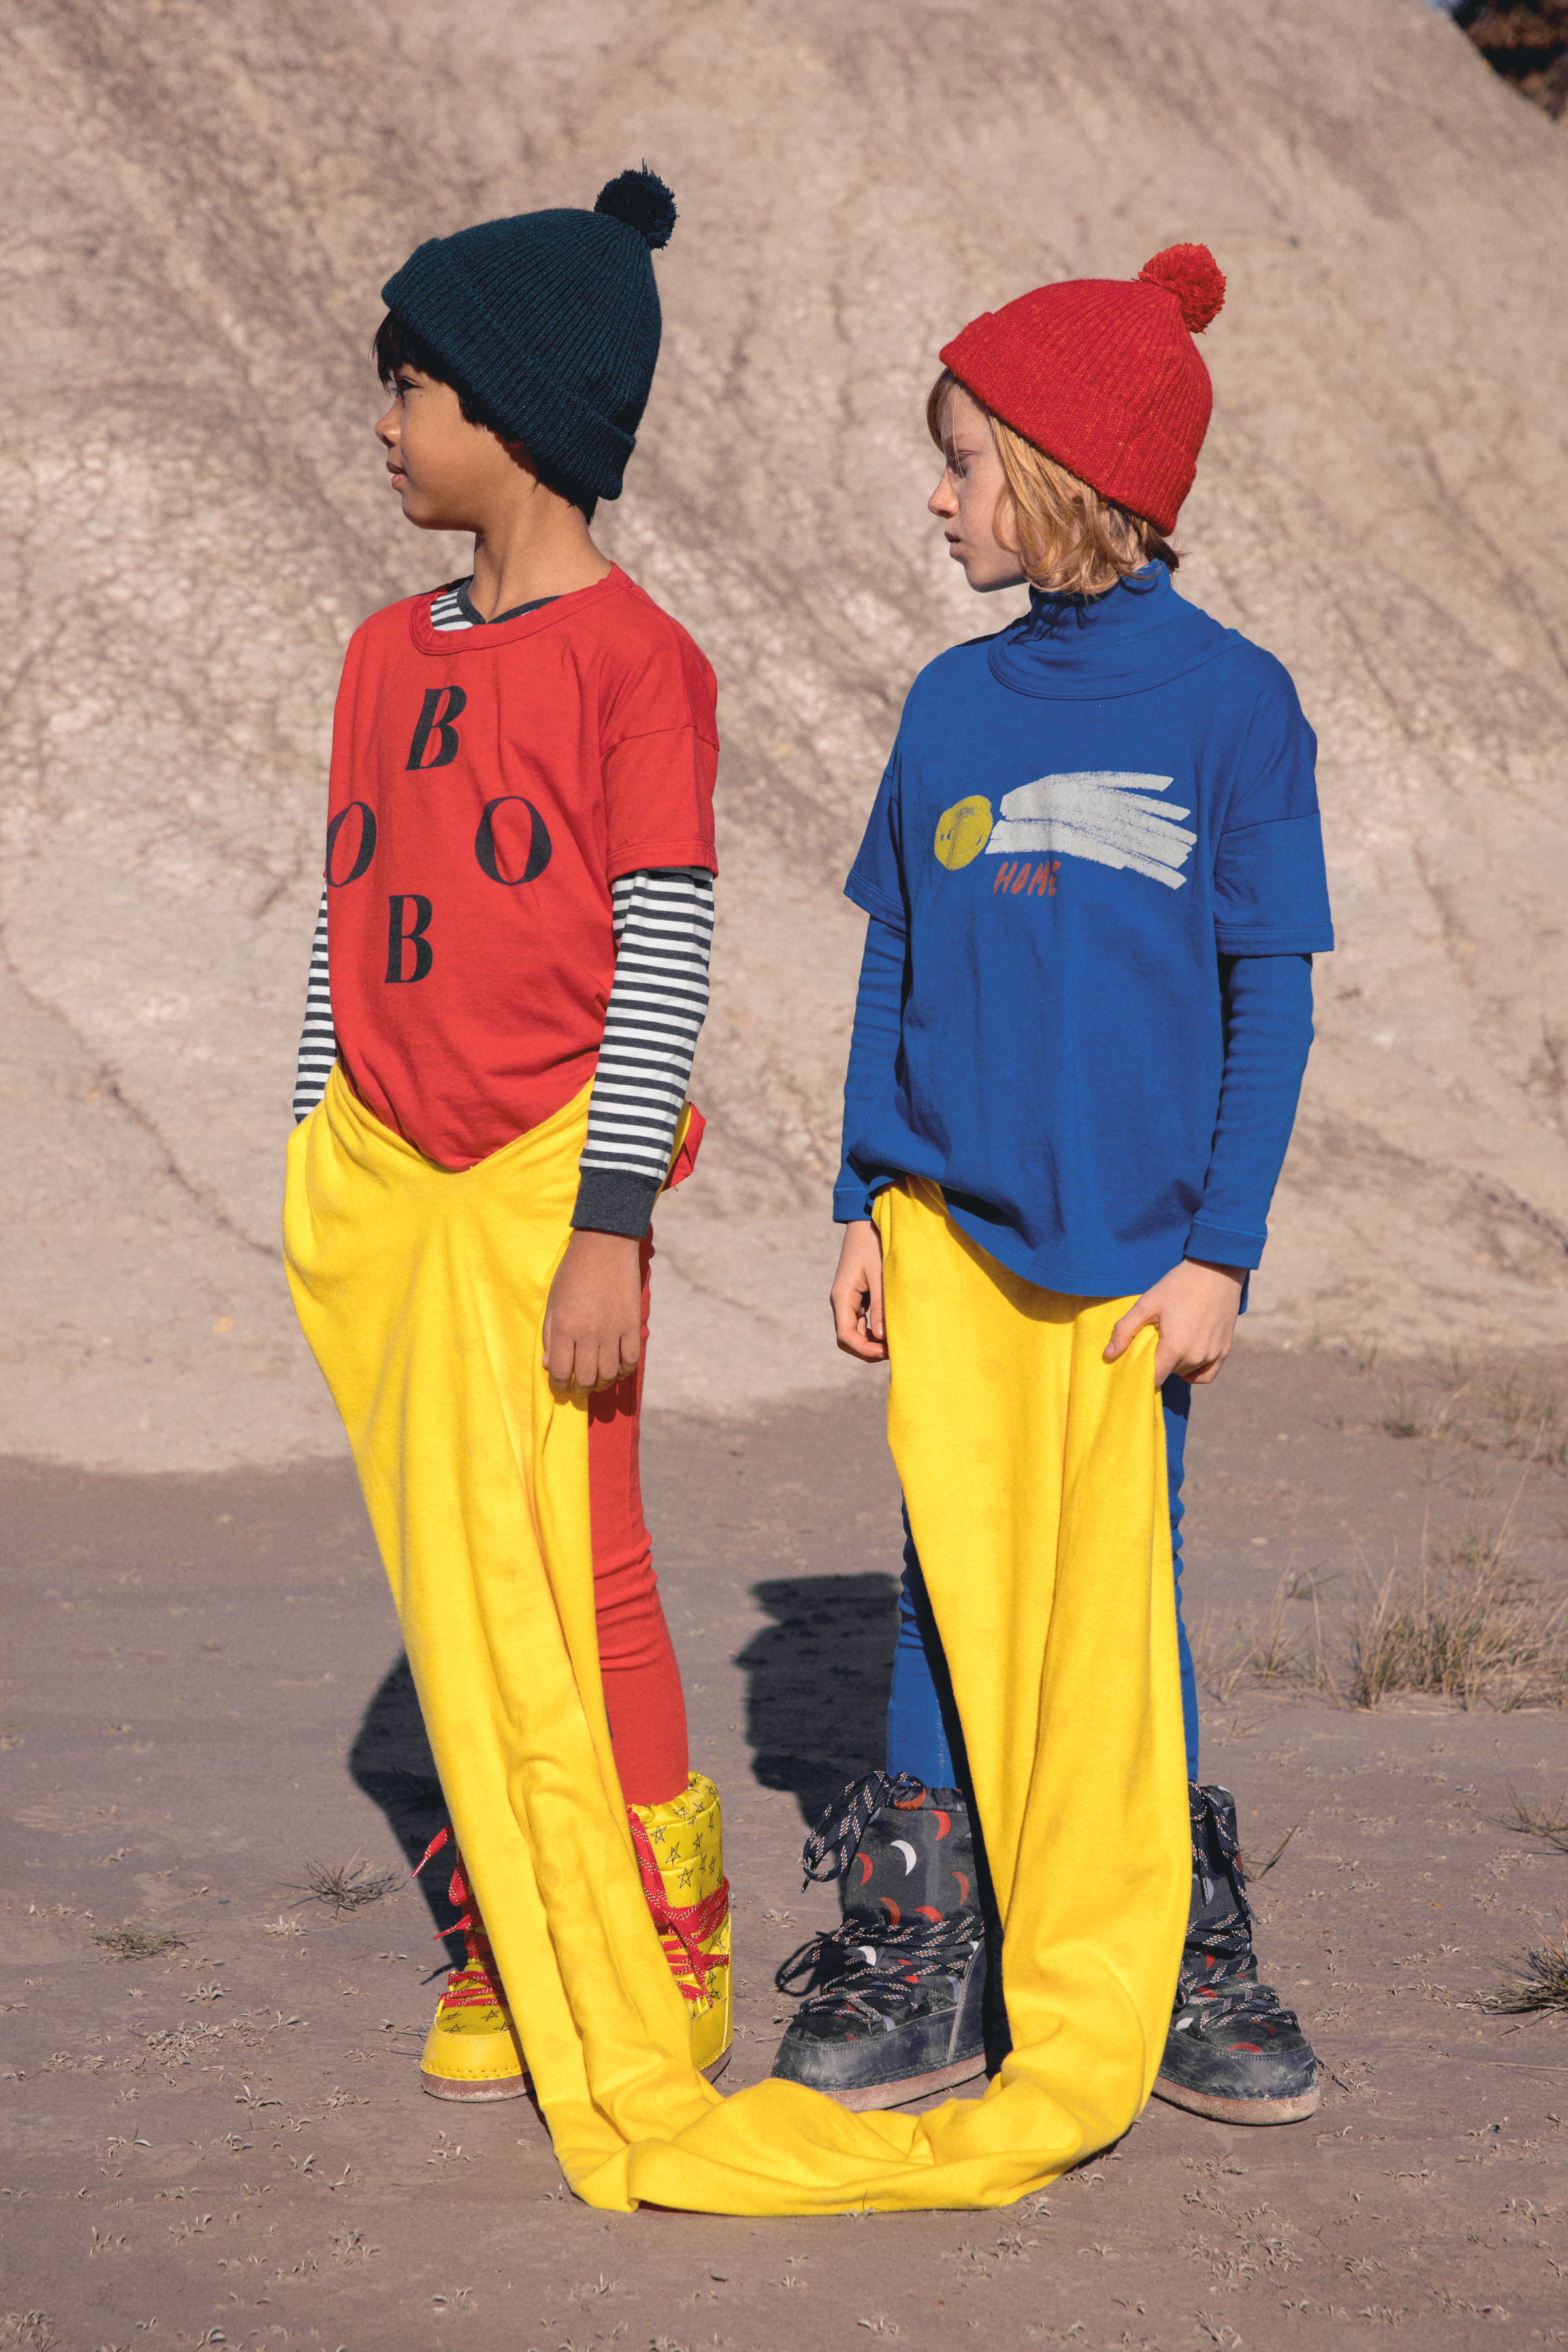 WE COSMOS AW19/20 BY BOBO CHOSES